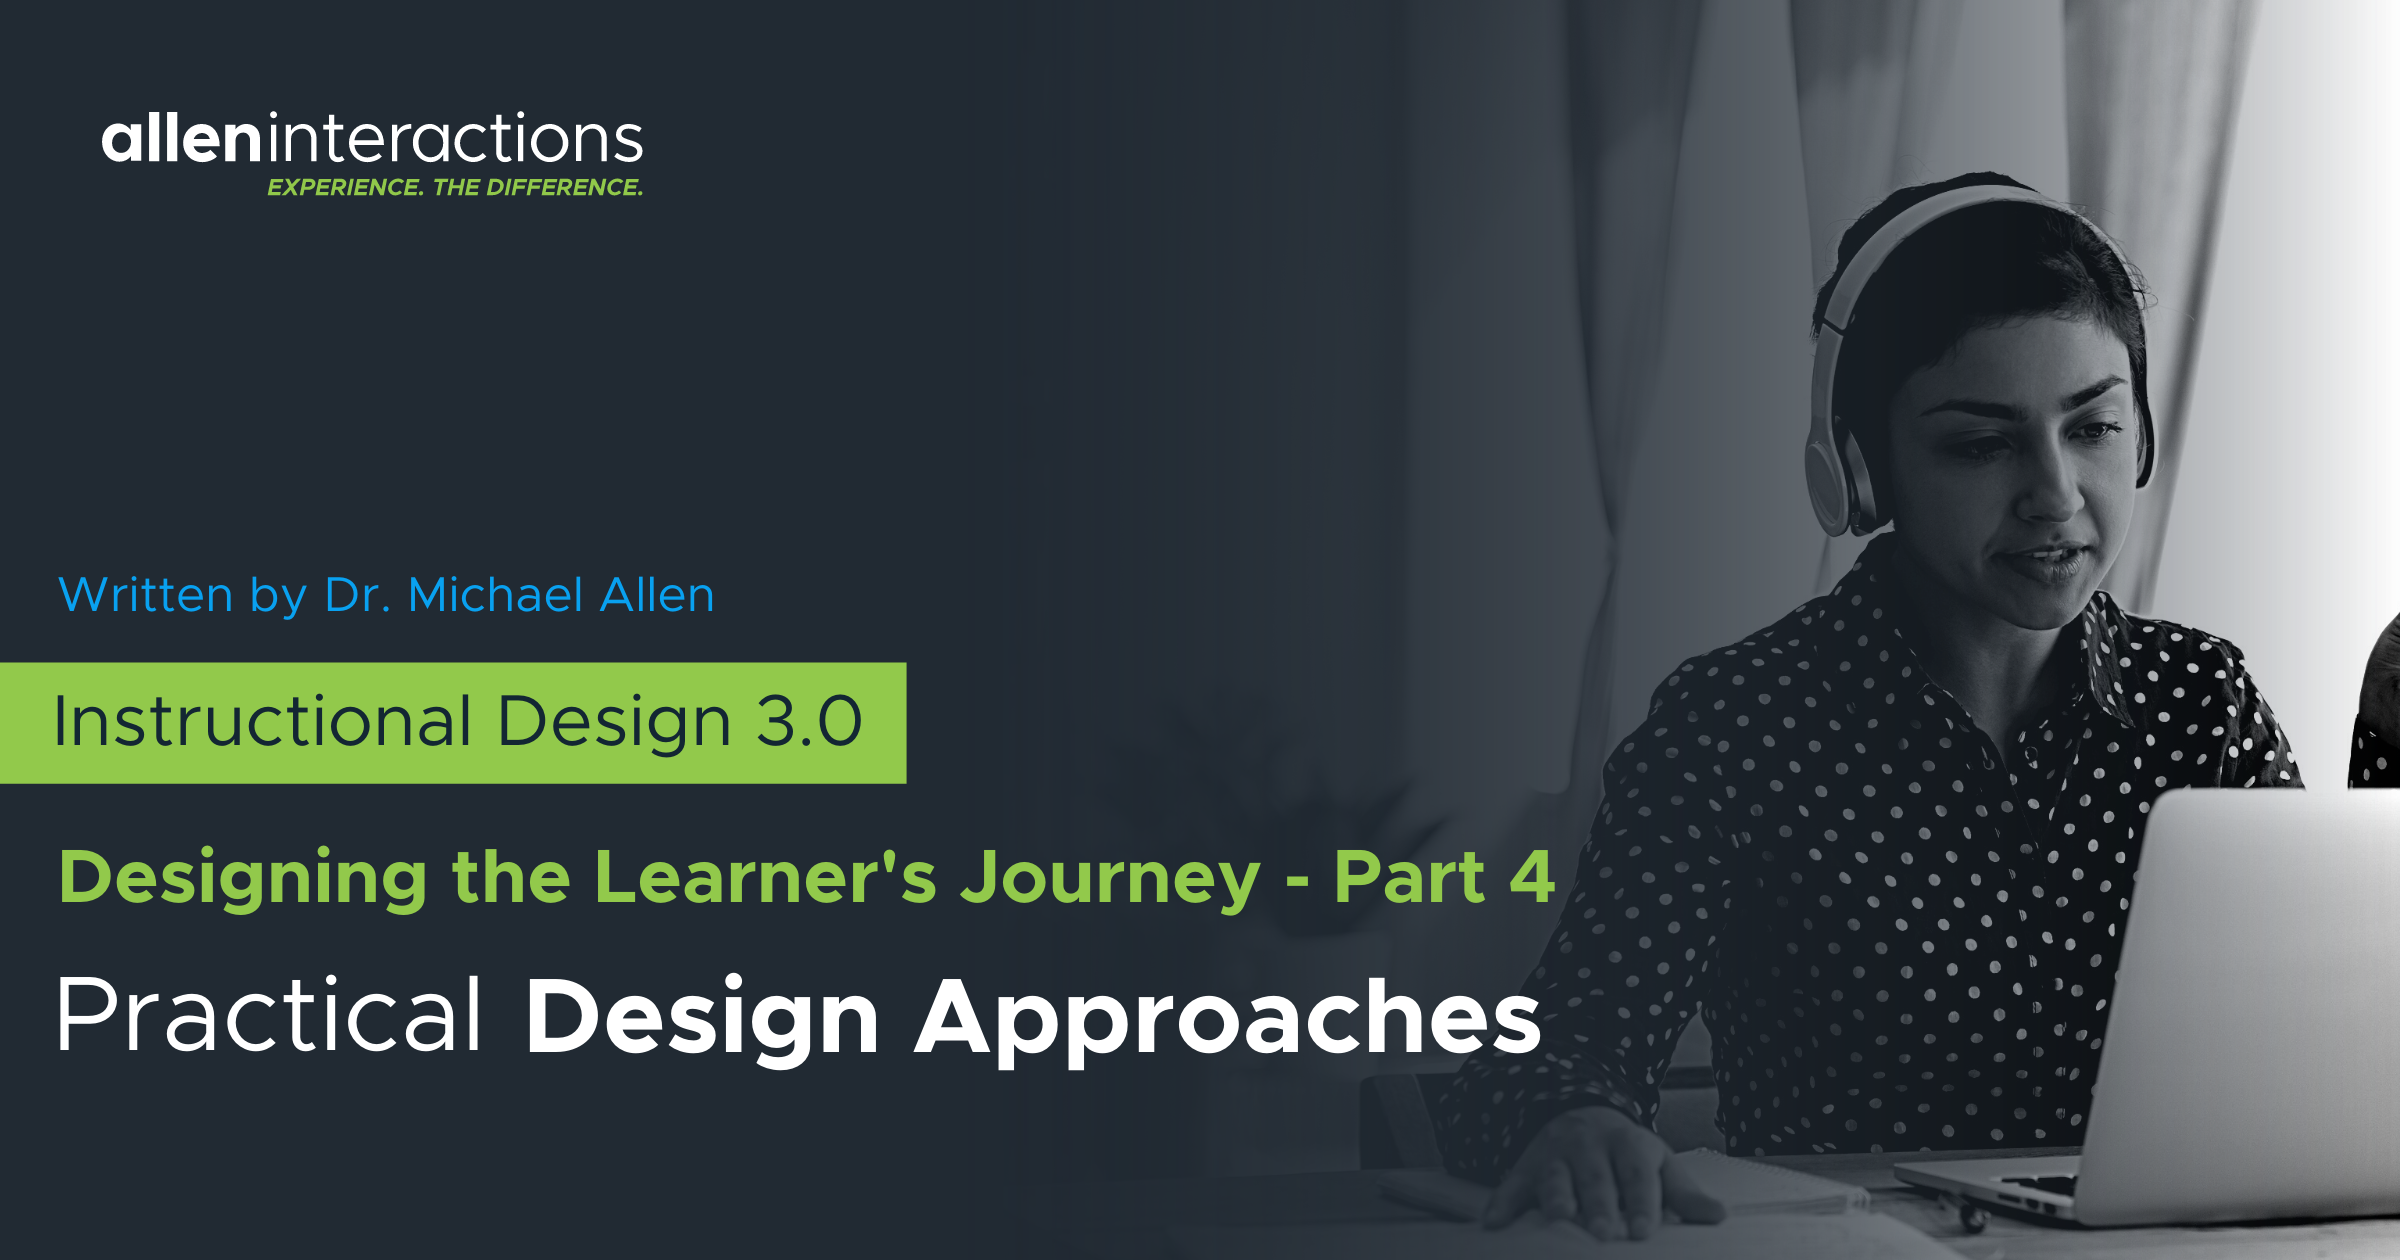 Instructional Design 3.0: Designing the Learner's Journey - Part 4: Practical Design Approaches for Experience-based Learning